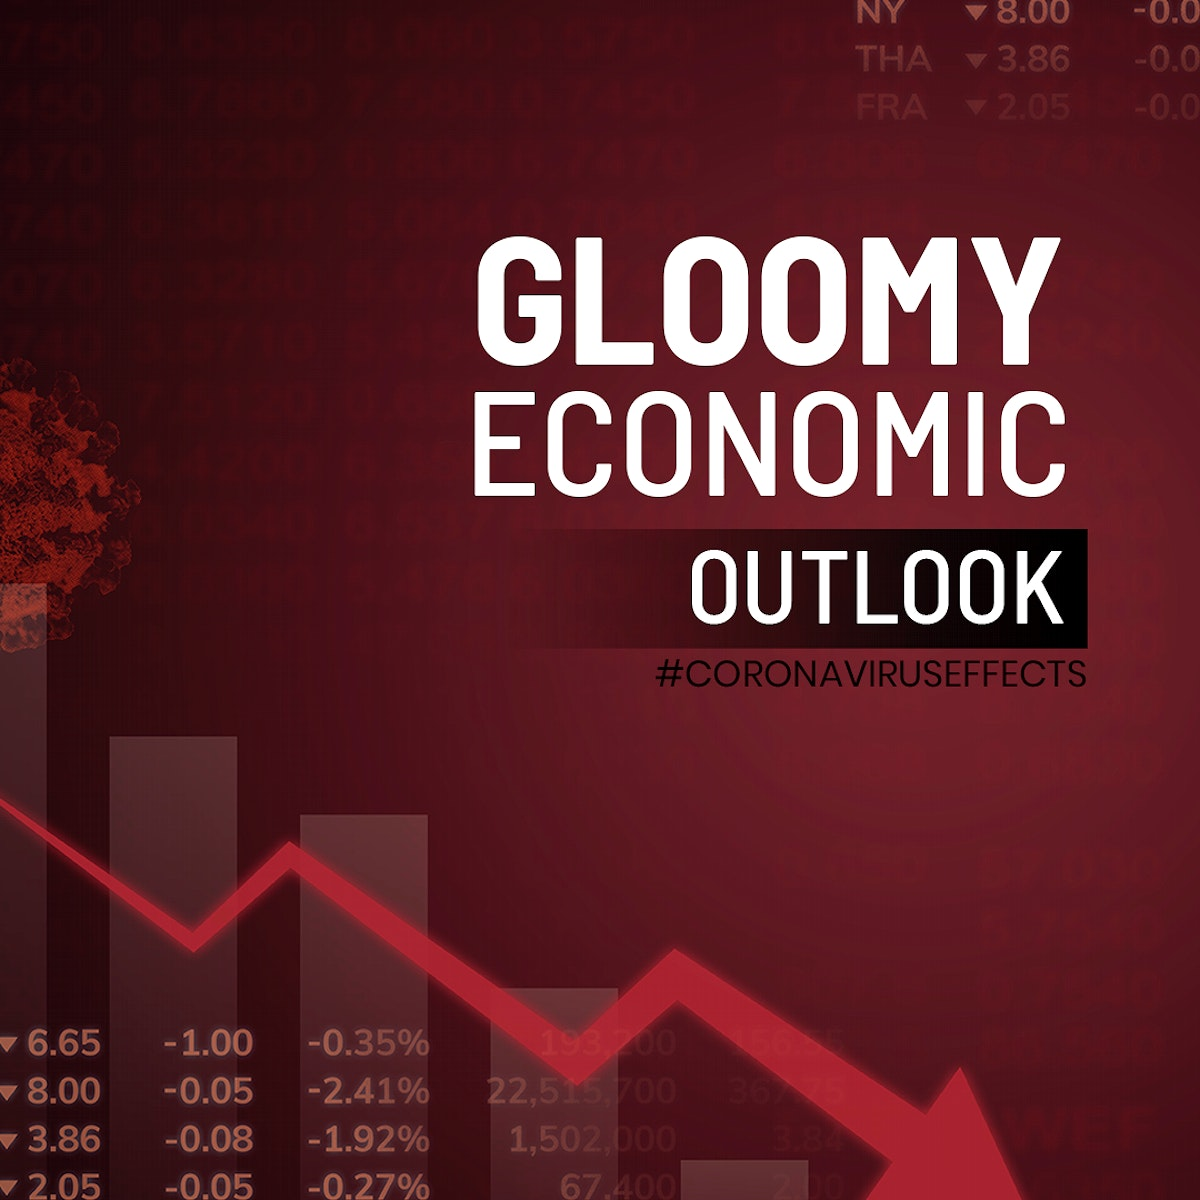 Gloomy economic outlook  due to COVID-19 social banner vector